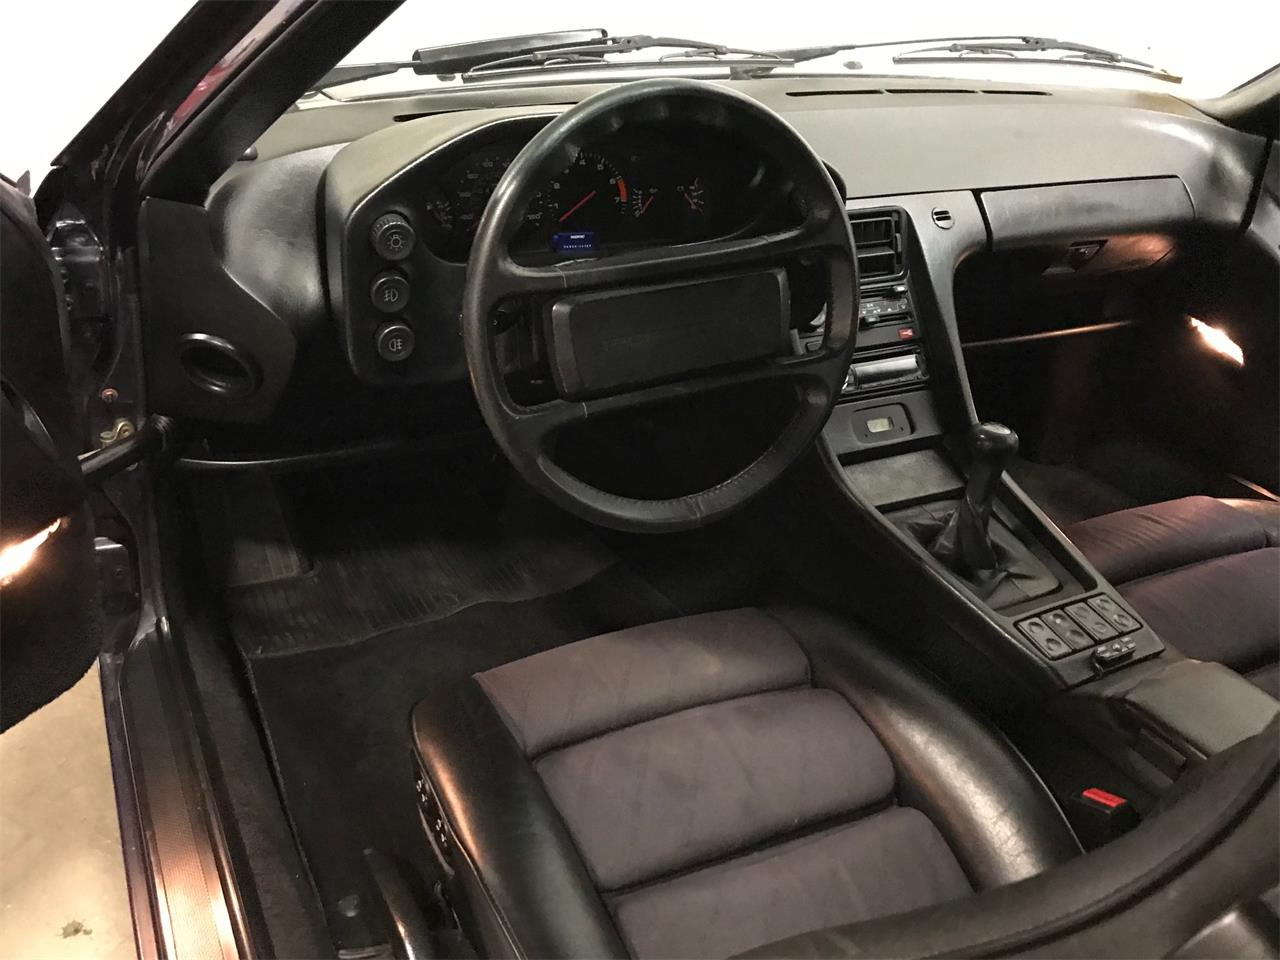 1985 Porsche 928S for sale in Cleveland, OH – photo 17